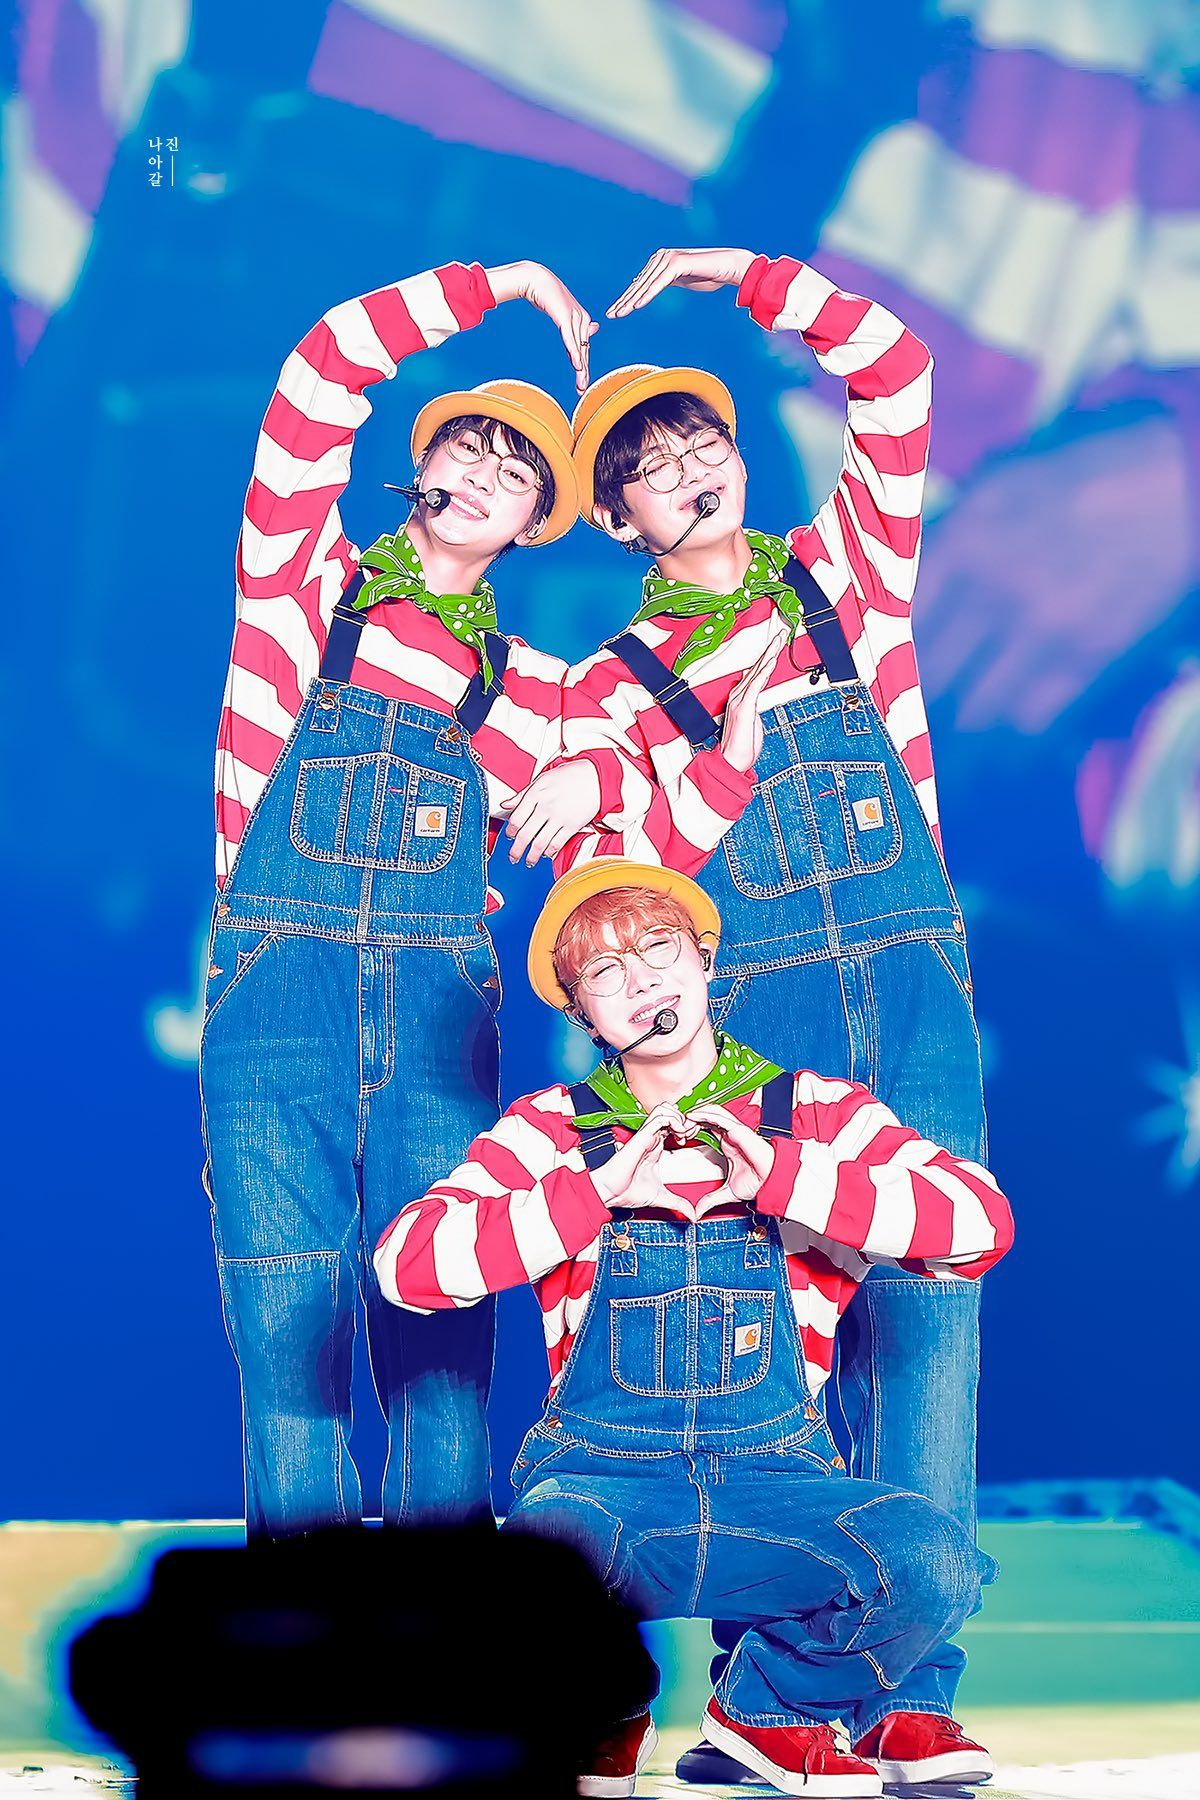 161113/PIC] BTS 3RD MUSTER [ARMY ZIP +] w Gocheok Sky Dome